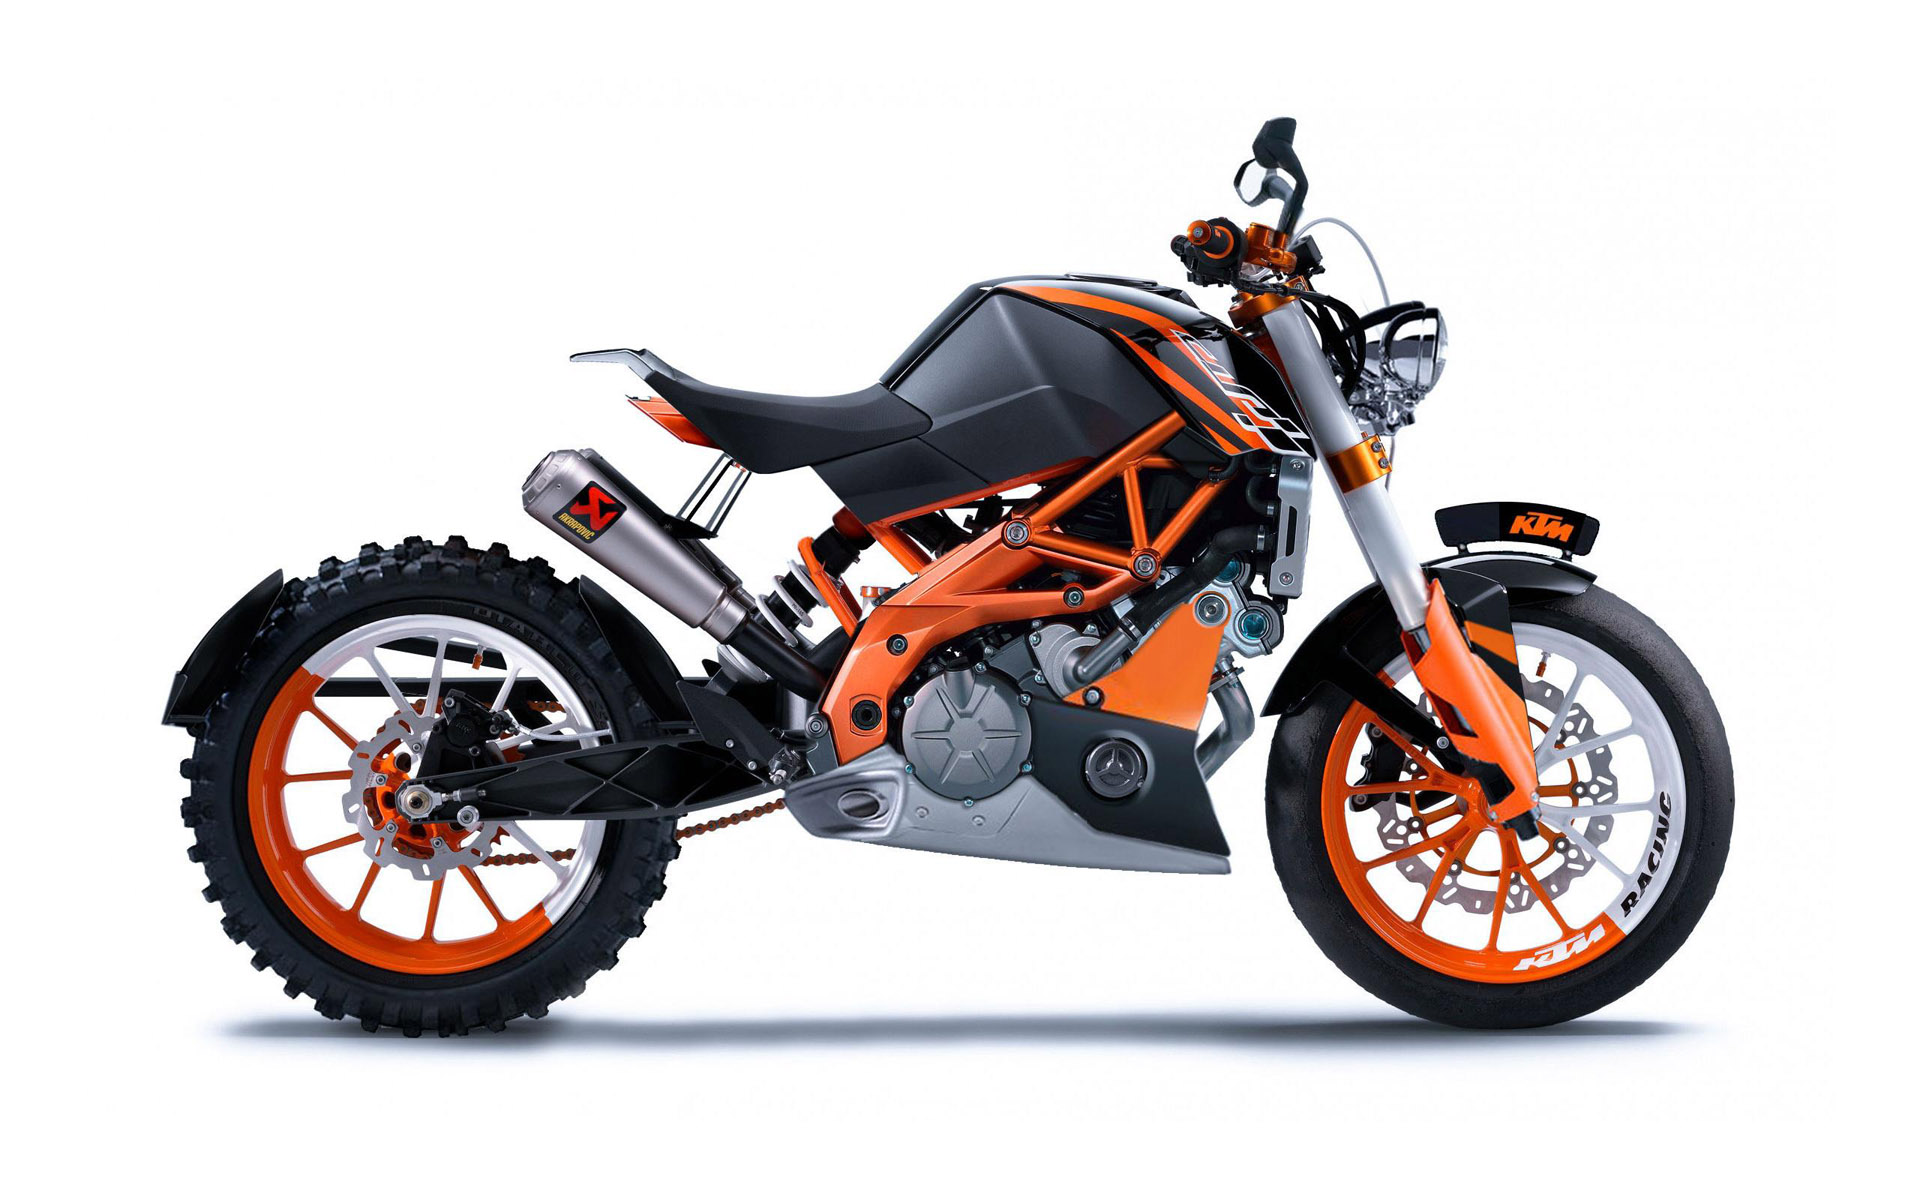 10 Best images about KTM Bikes on Pinterest | Duke, Colors and In